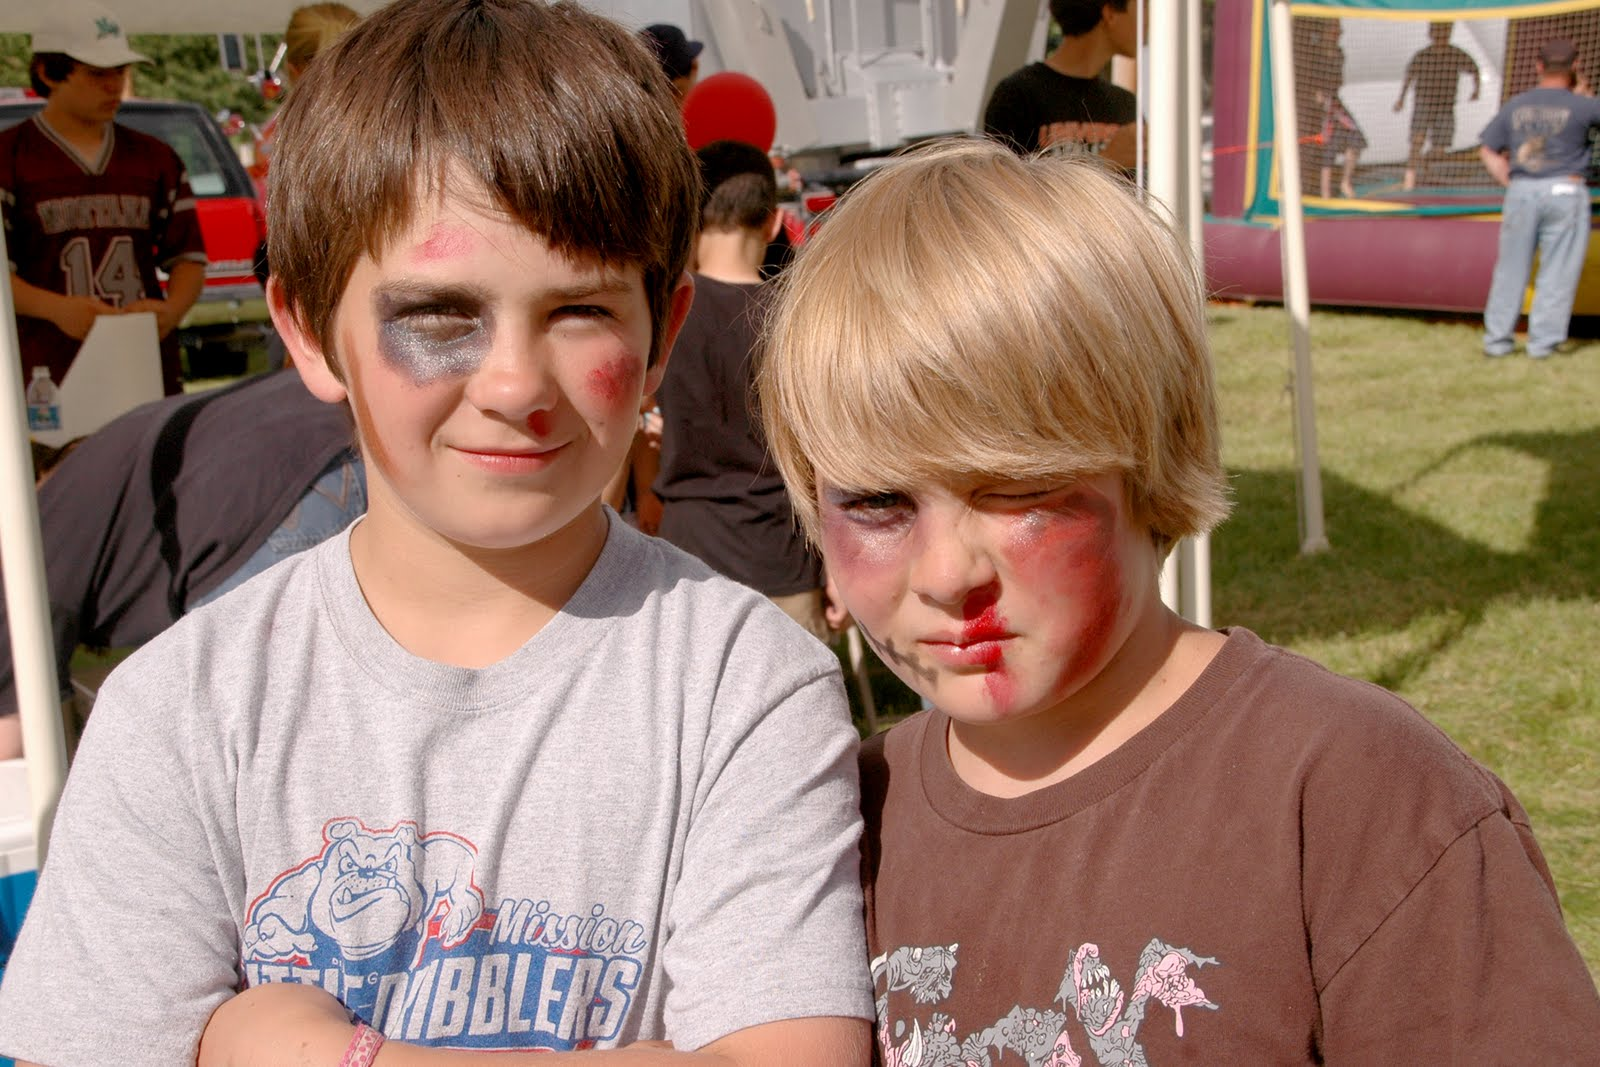 Cohesive pieces 2010 fire department picnic israel and gage went with a different approach to the face painting i guess this is the route you go if youre in middle school and want the pretty high ccuart Choice Image